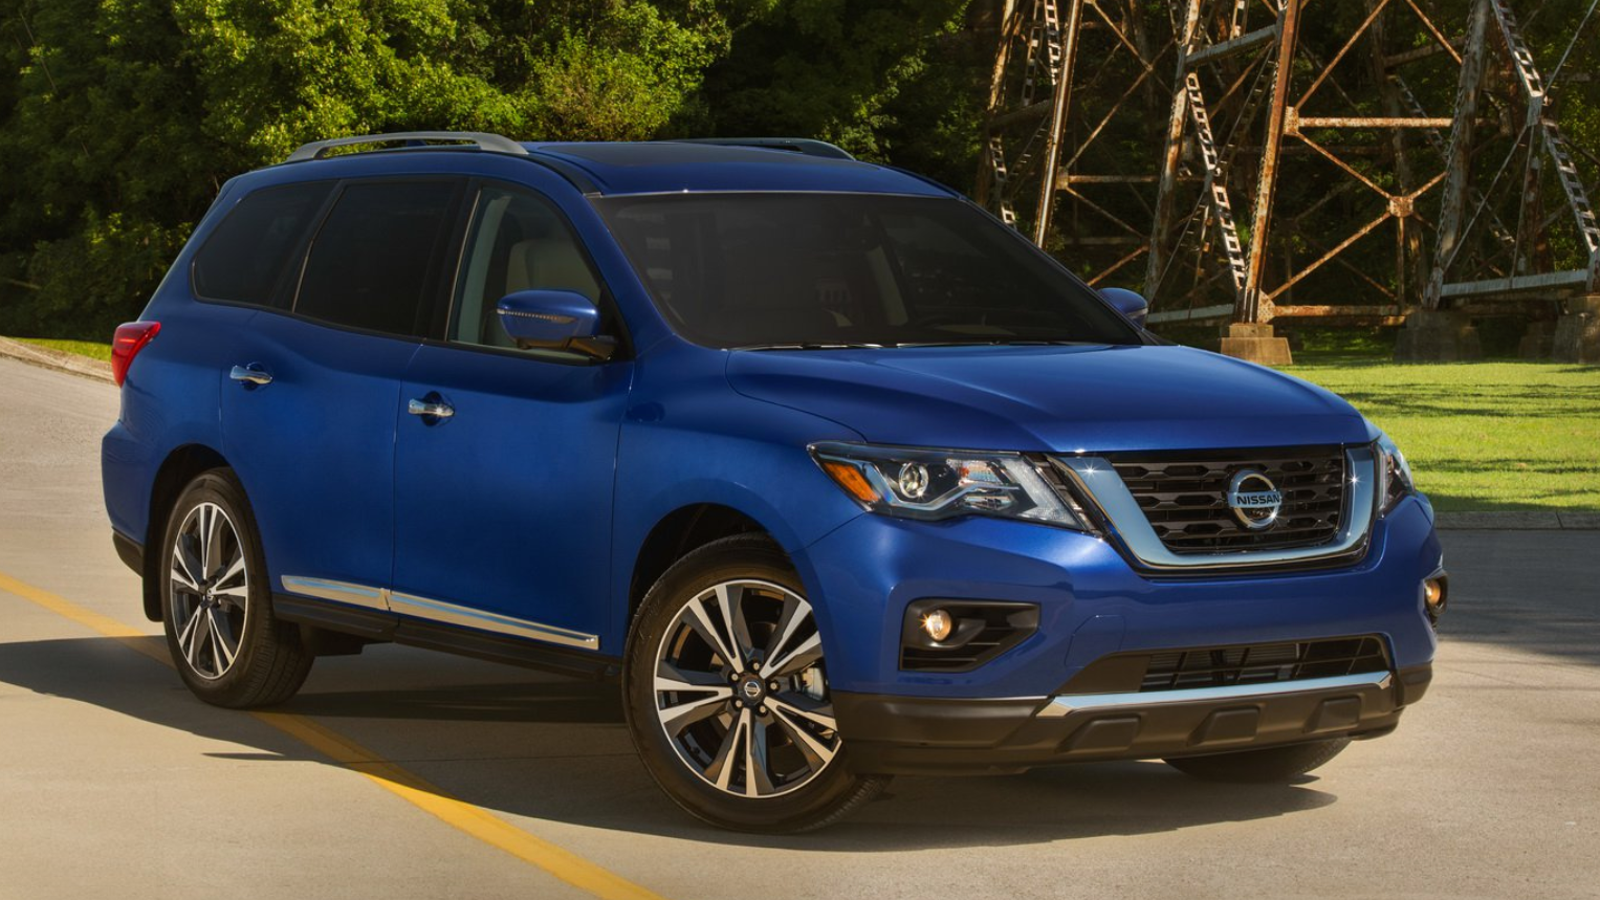 What Happened To The Nissan Pathfinder? » Forex trading